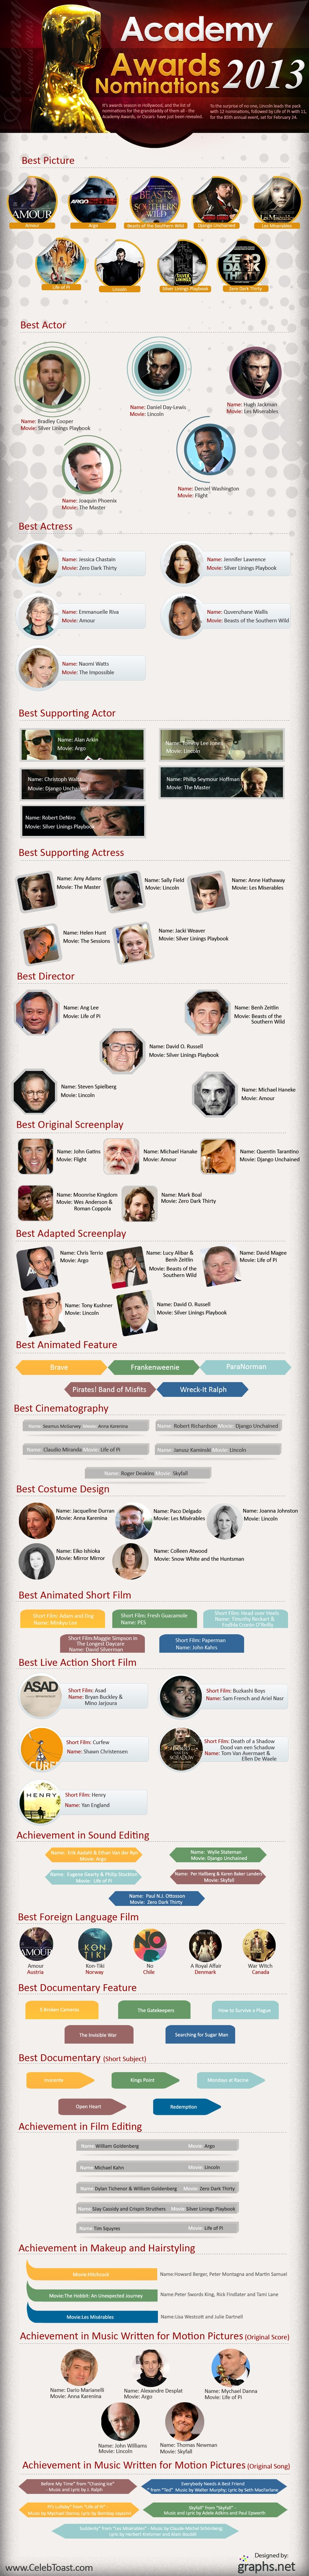 Nominations For The 85th Academy Awards 2013